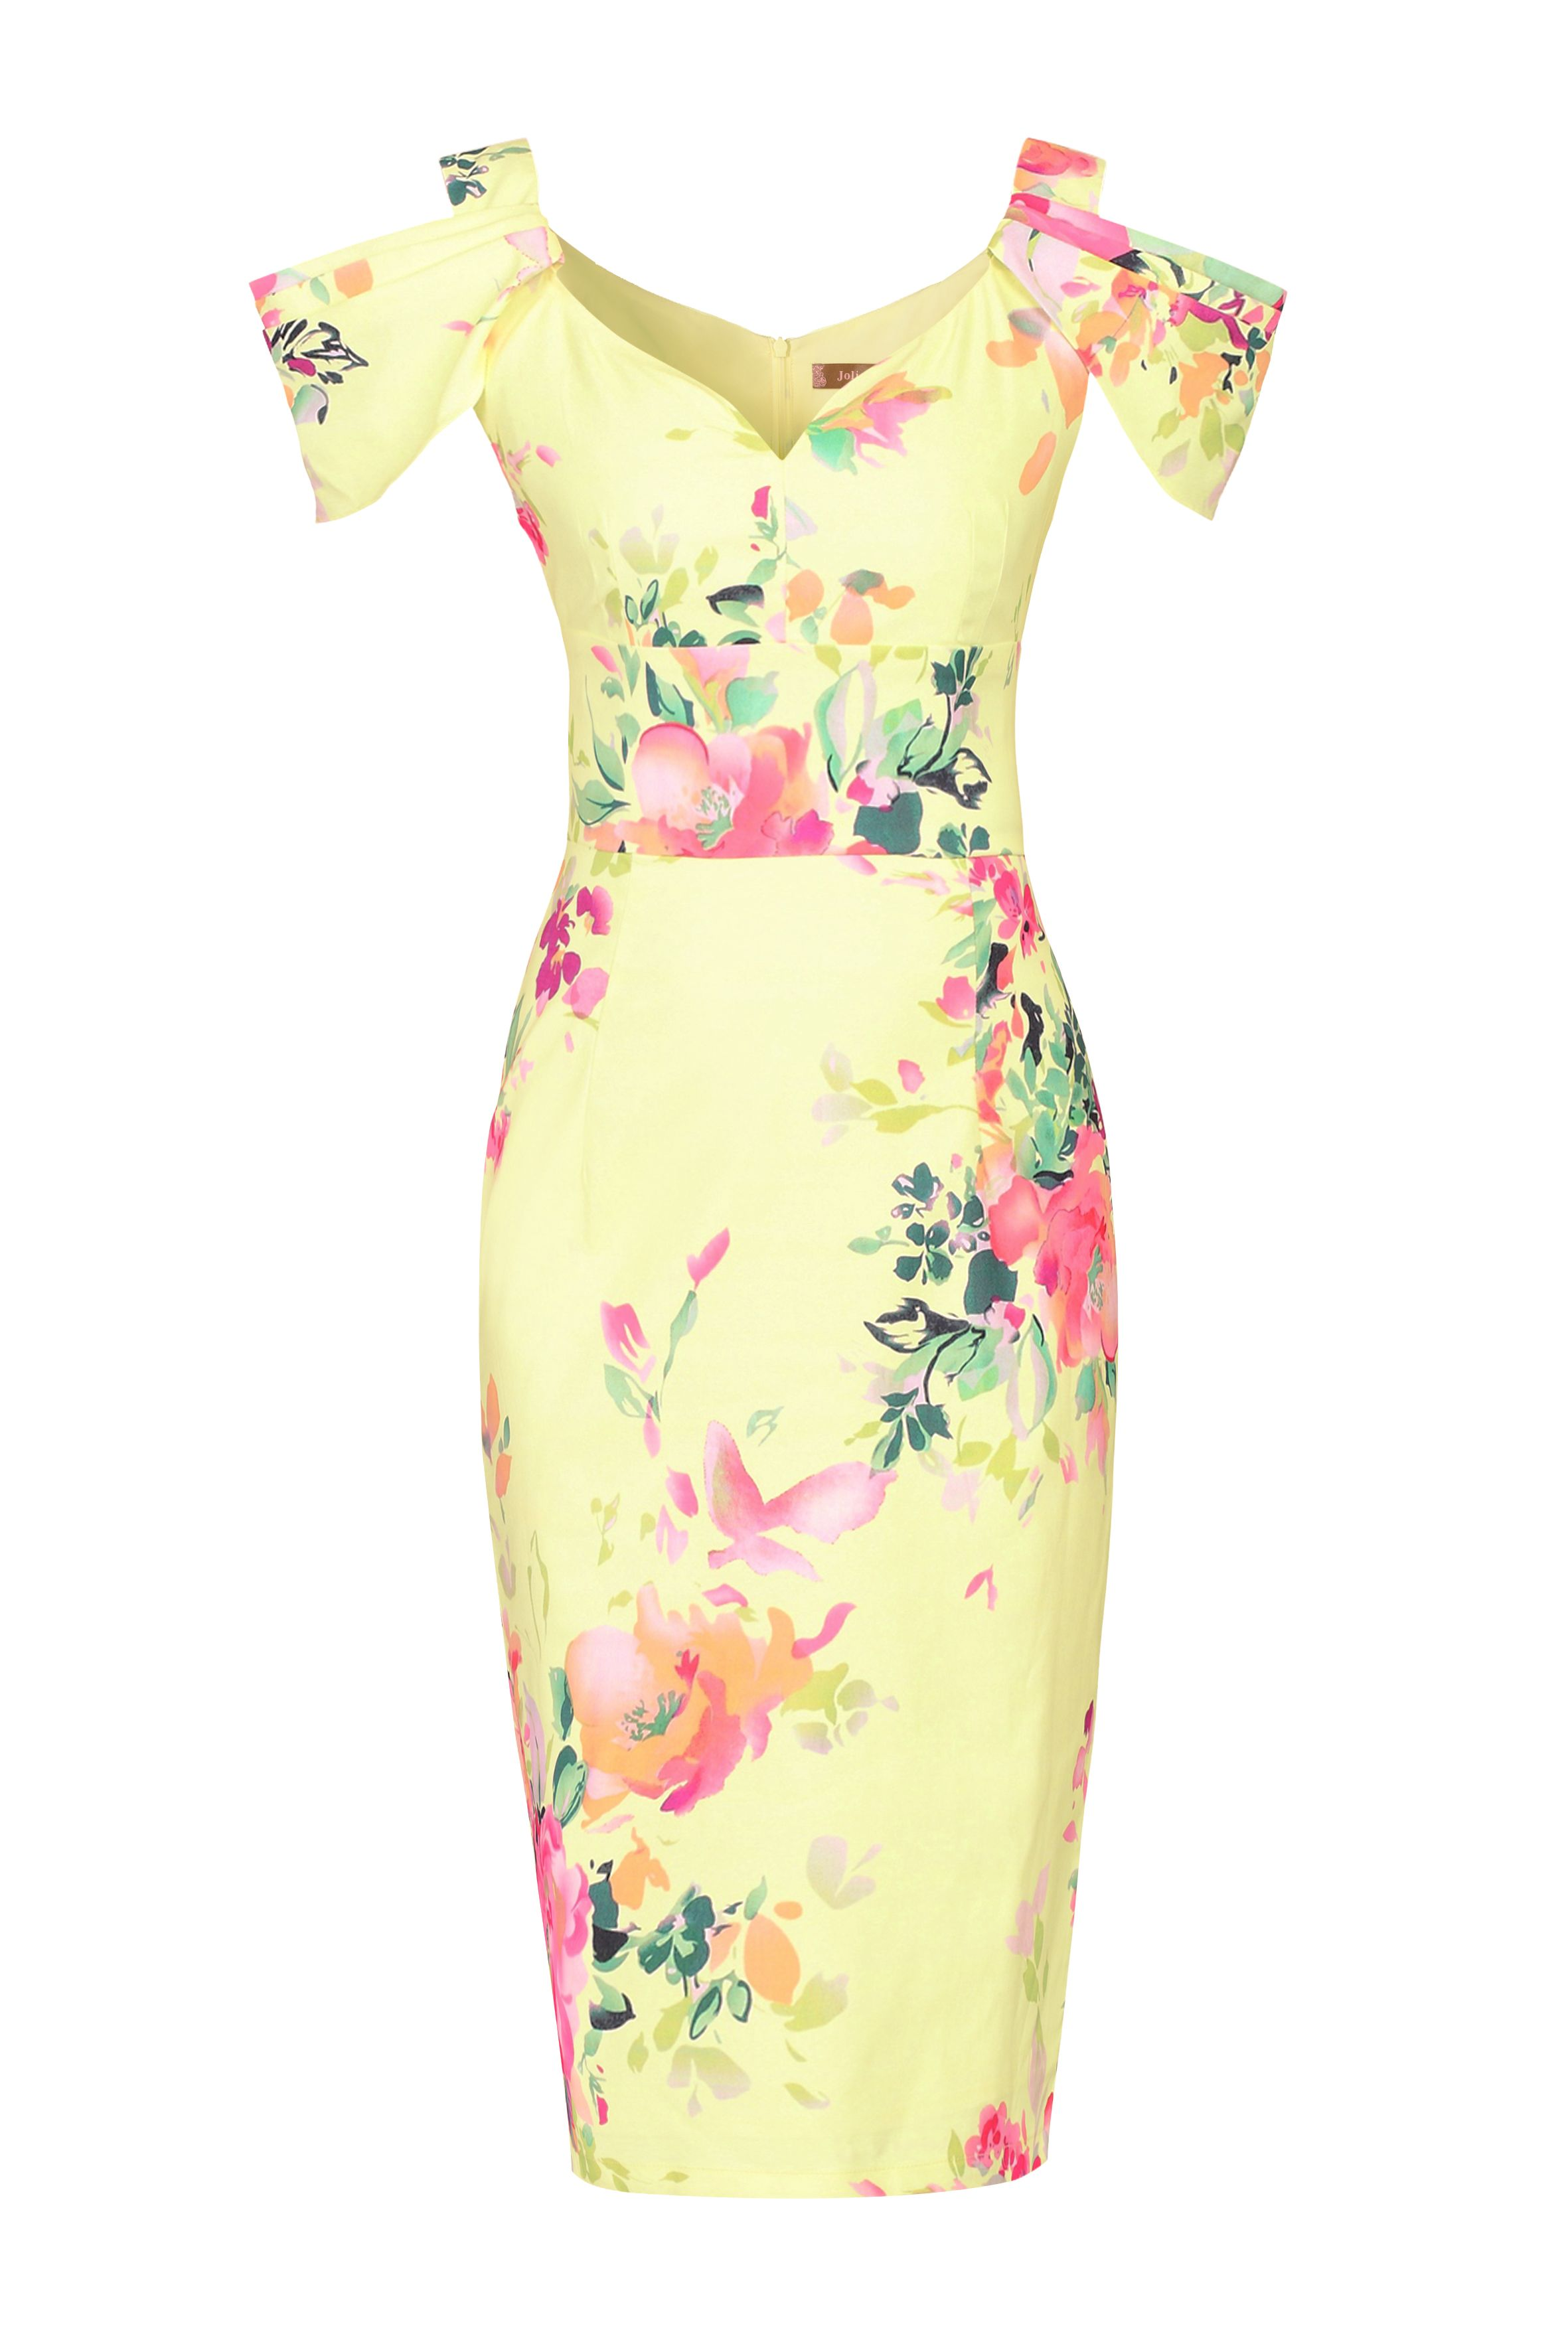 Jolie Moi Floral Print Shoulder Structured Dress, Yellow